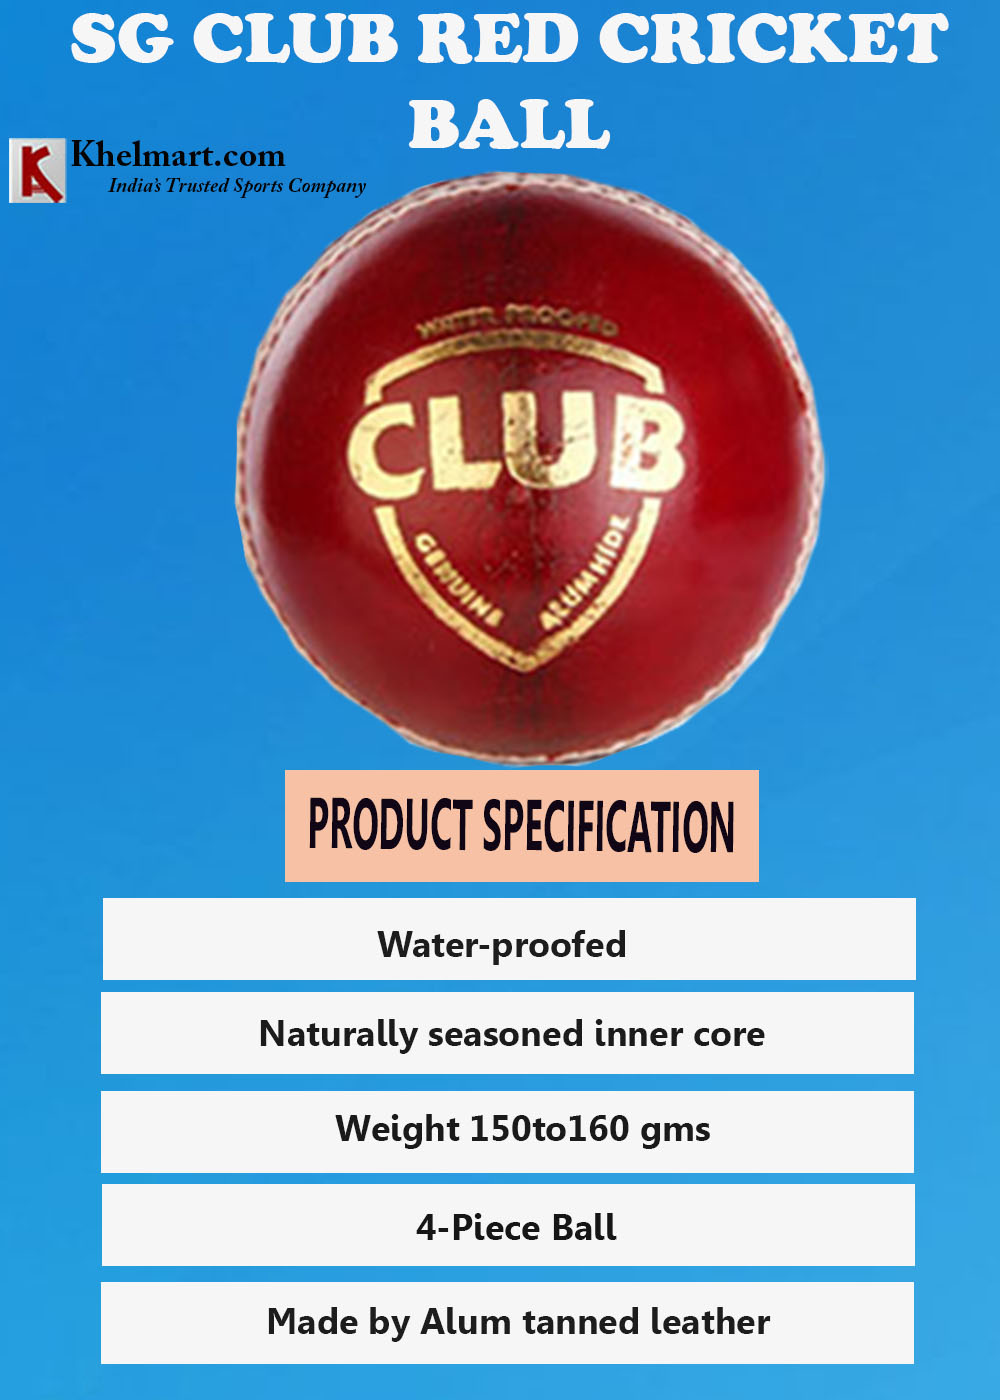 SG Club Red Cricket Ball